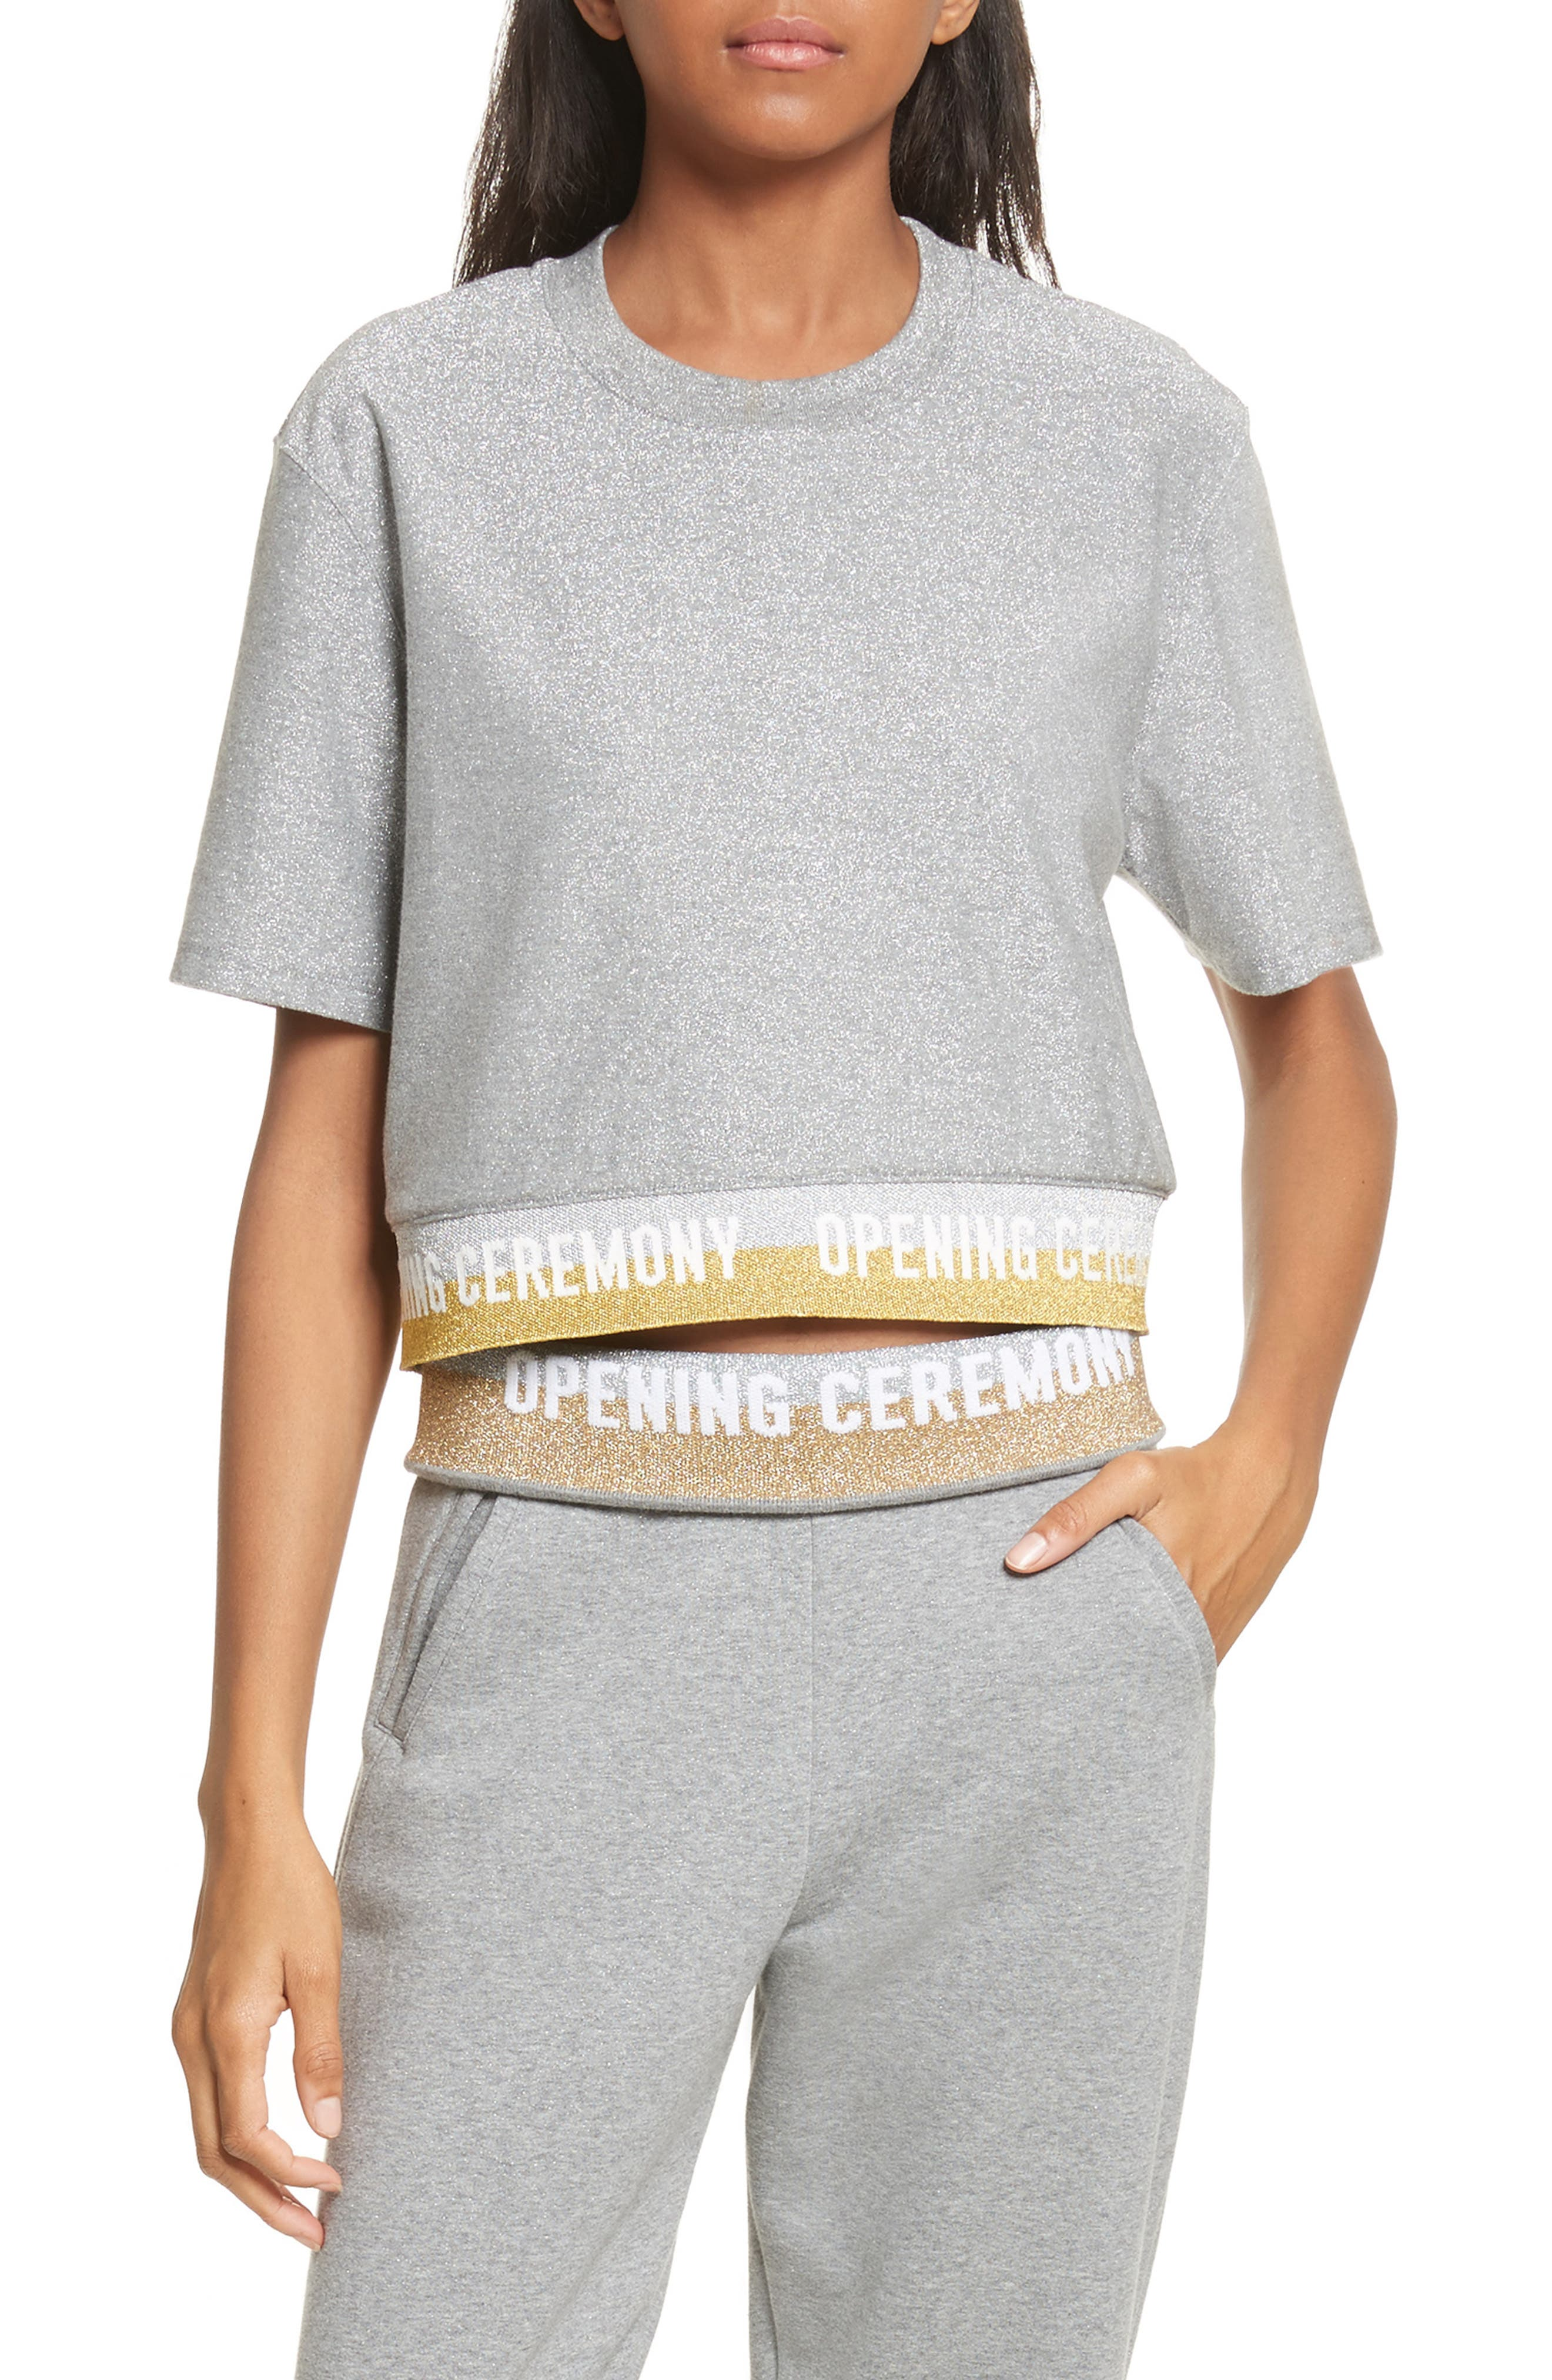 Alternate Image 1 Selected - Opening Ceremony Elastic Logo Crop Tee (Limited Edition)